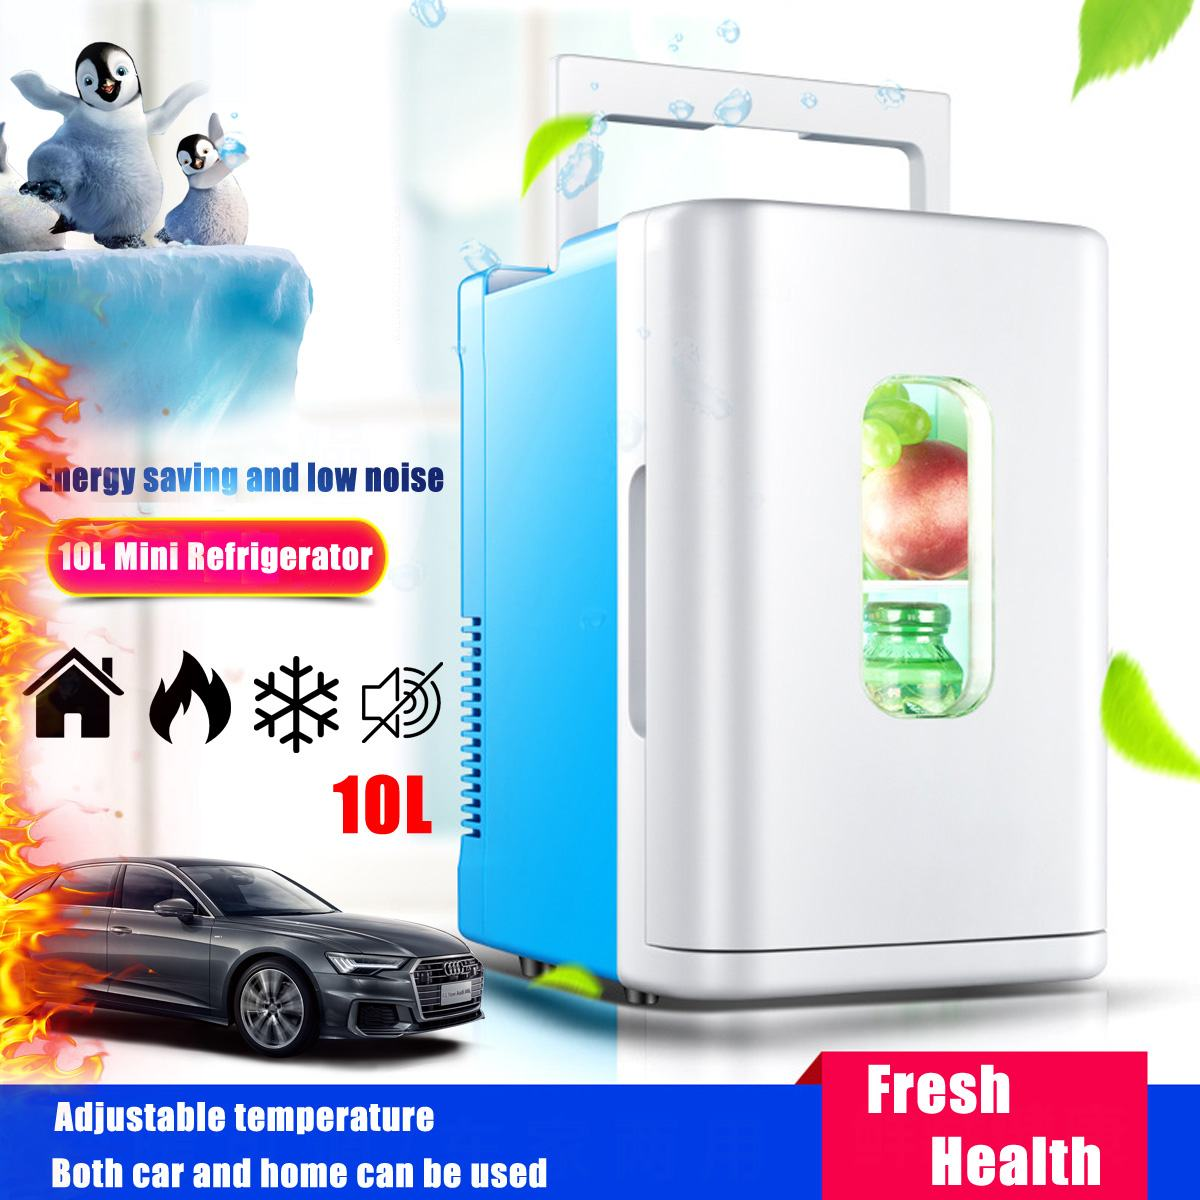 AUGIENB 220V Electric Refrigerator 10L Dormitory Small Refrigerator Multi-Purpose Mini Refrigerator Home Dual-Use